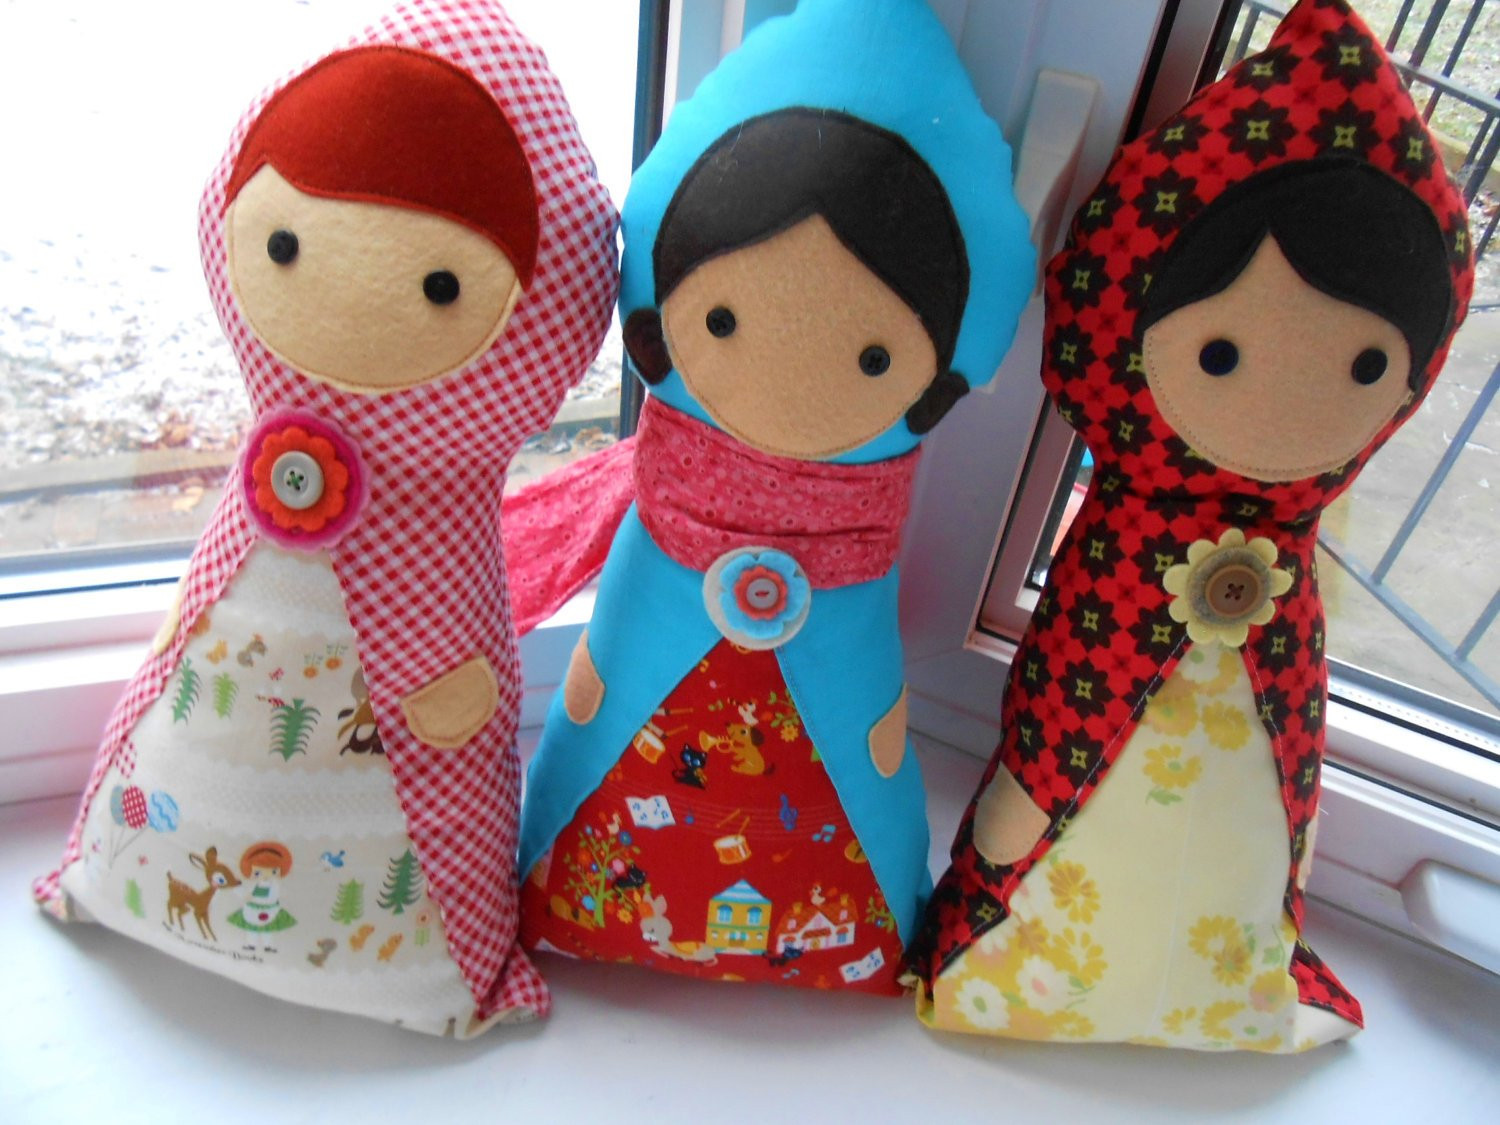 Doll Patterns Inspirational Little Traveller Doll Pdf Sewing Pattern Rag Doll Of Doll Patterns Best Of My Rag Doll Adorable Dolls to Sew